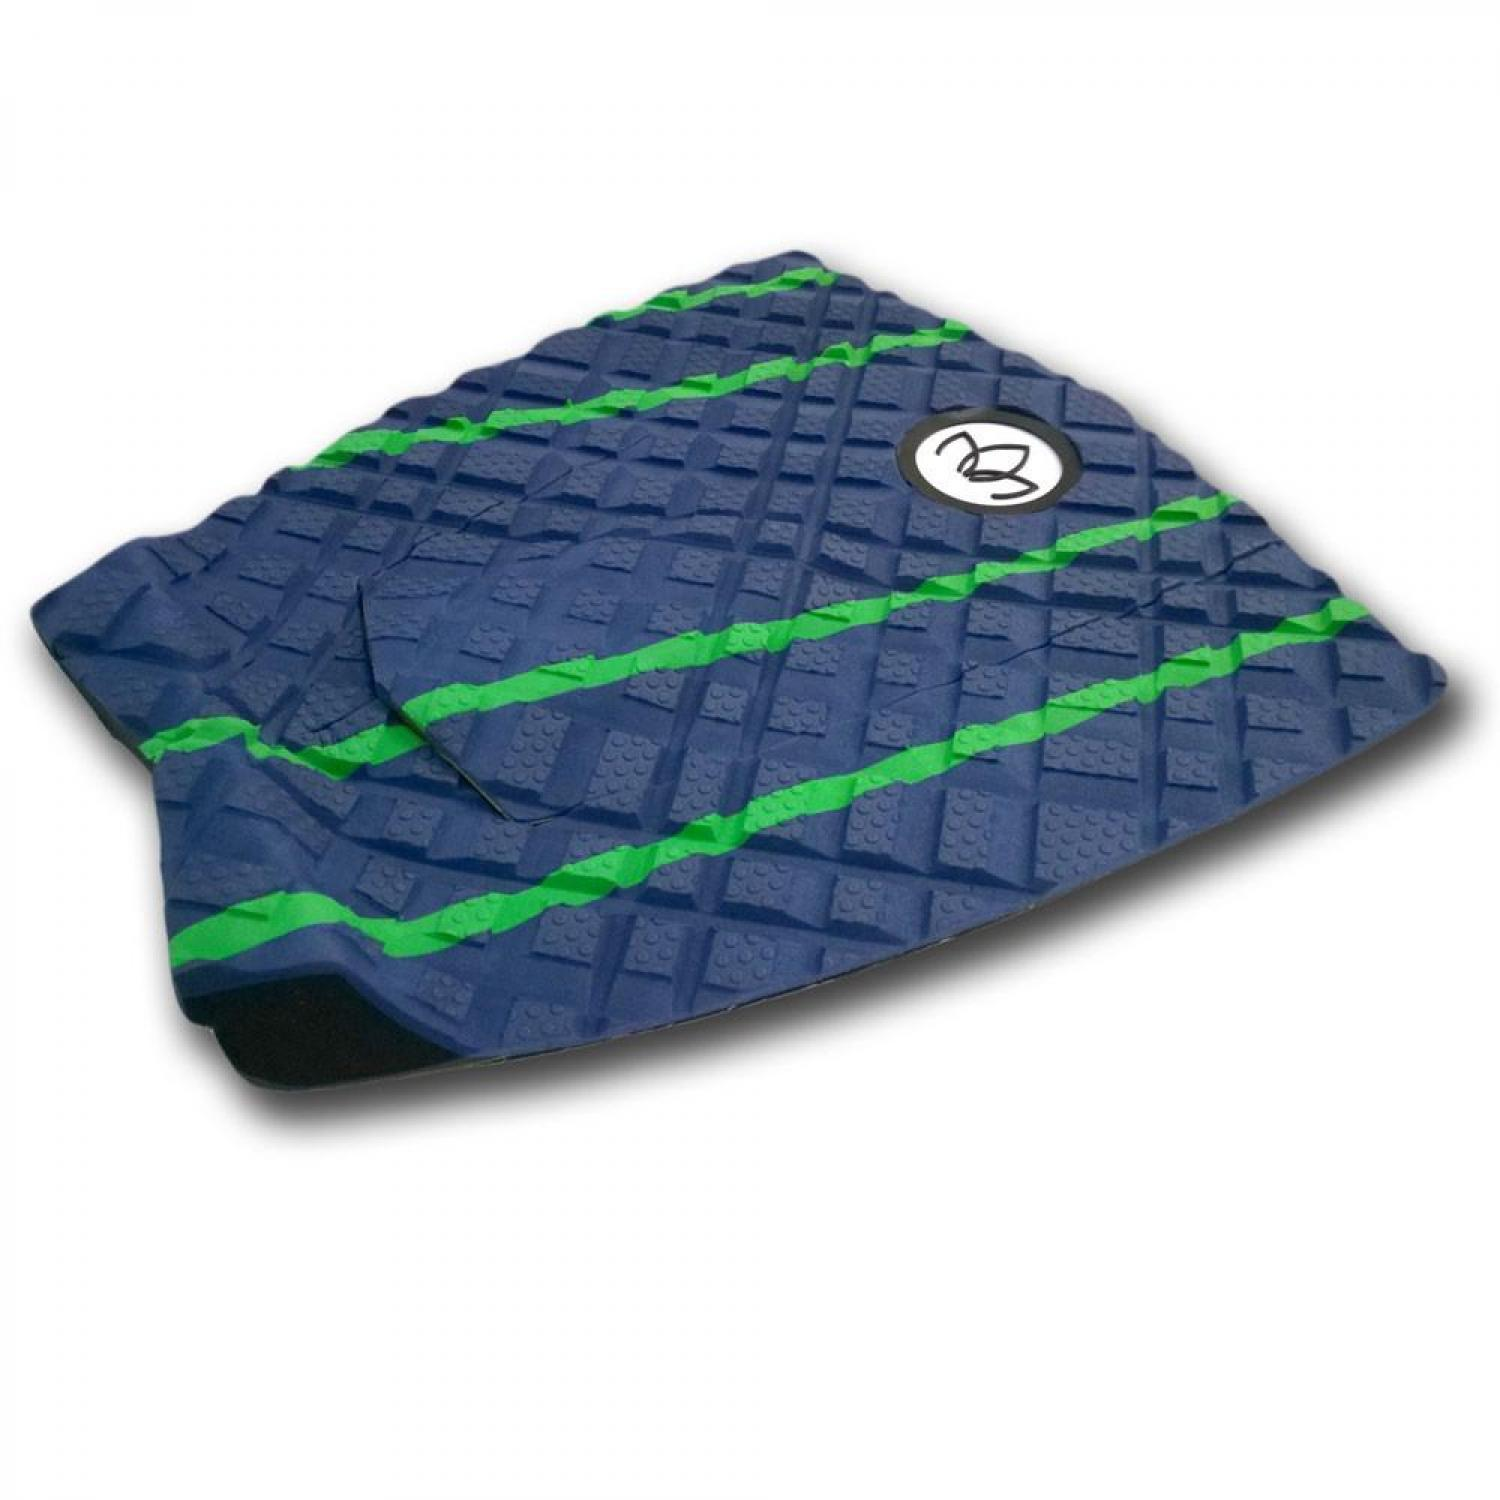 4WD 3 piece Traction Pad Navy [STAY COVERED]